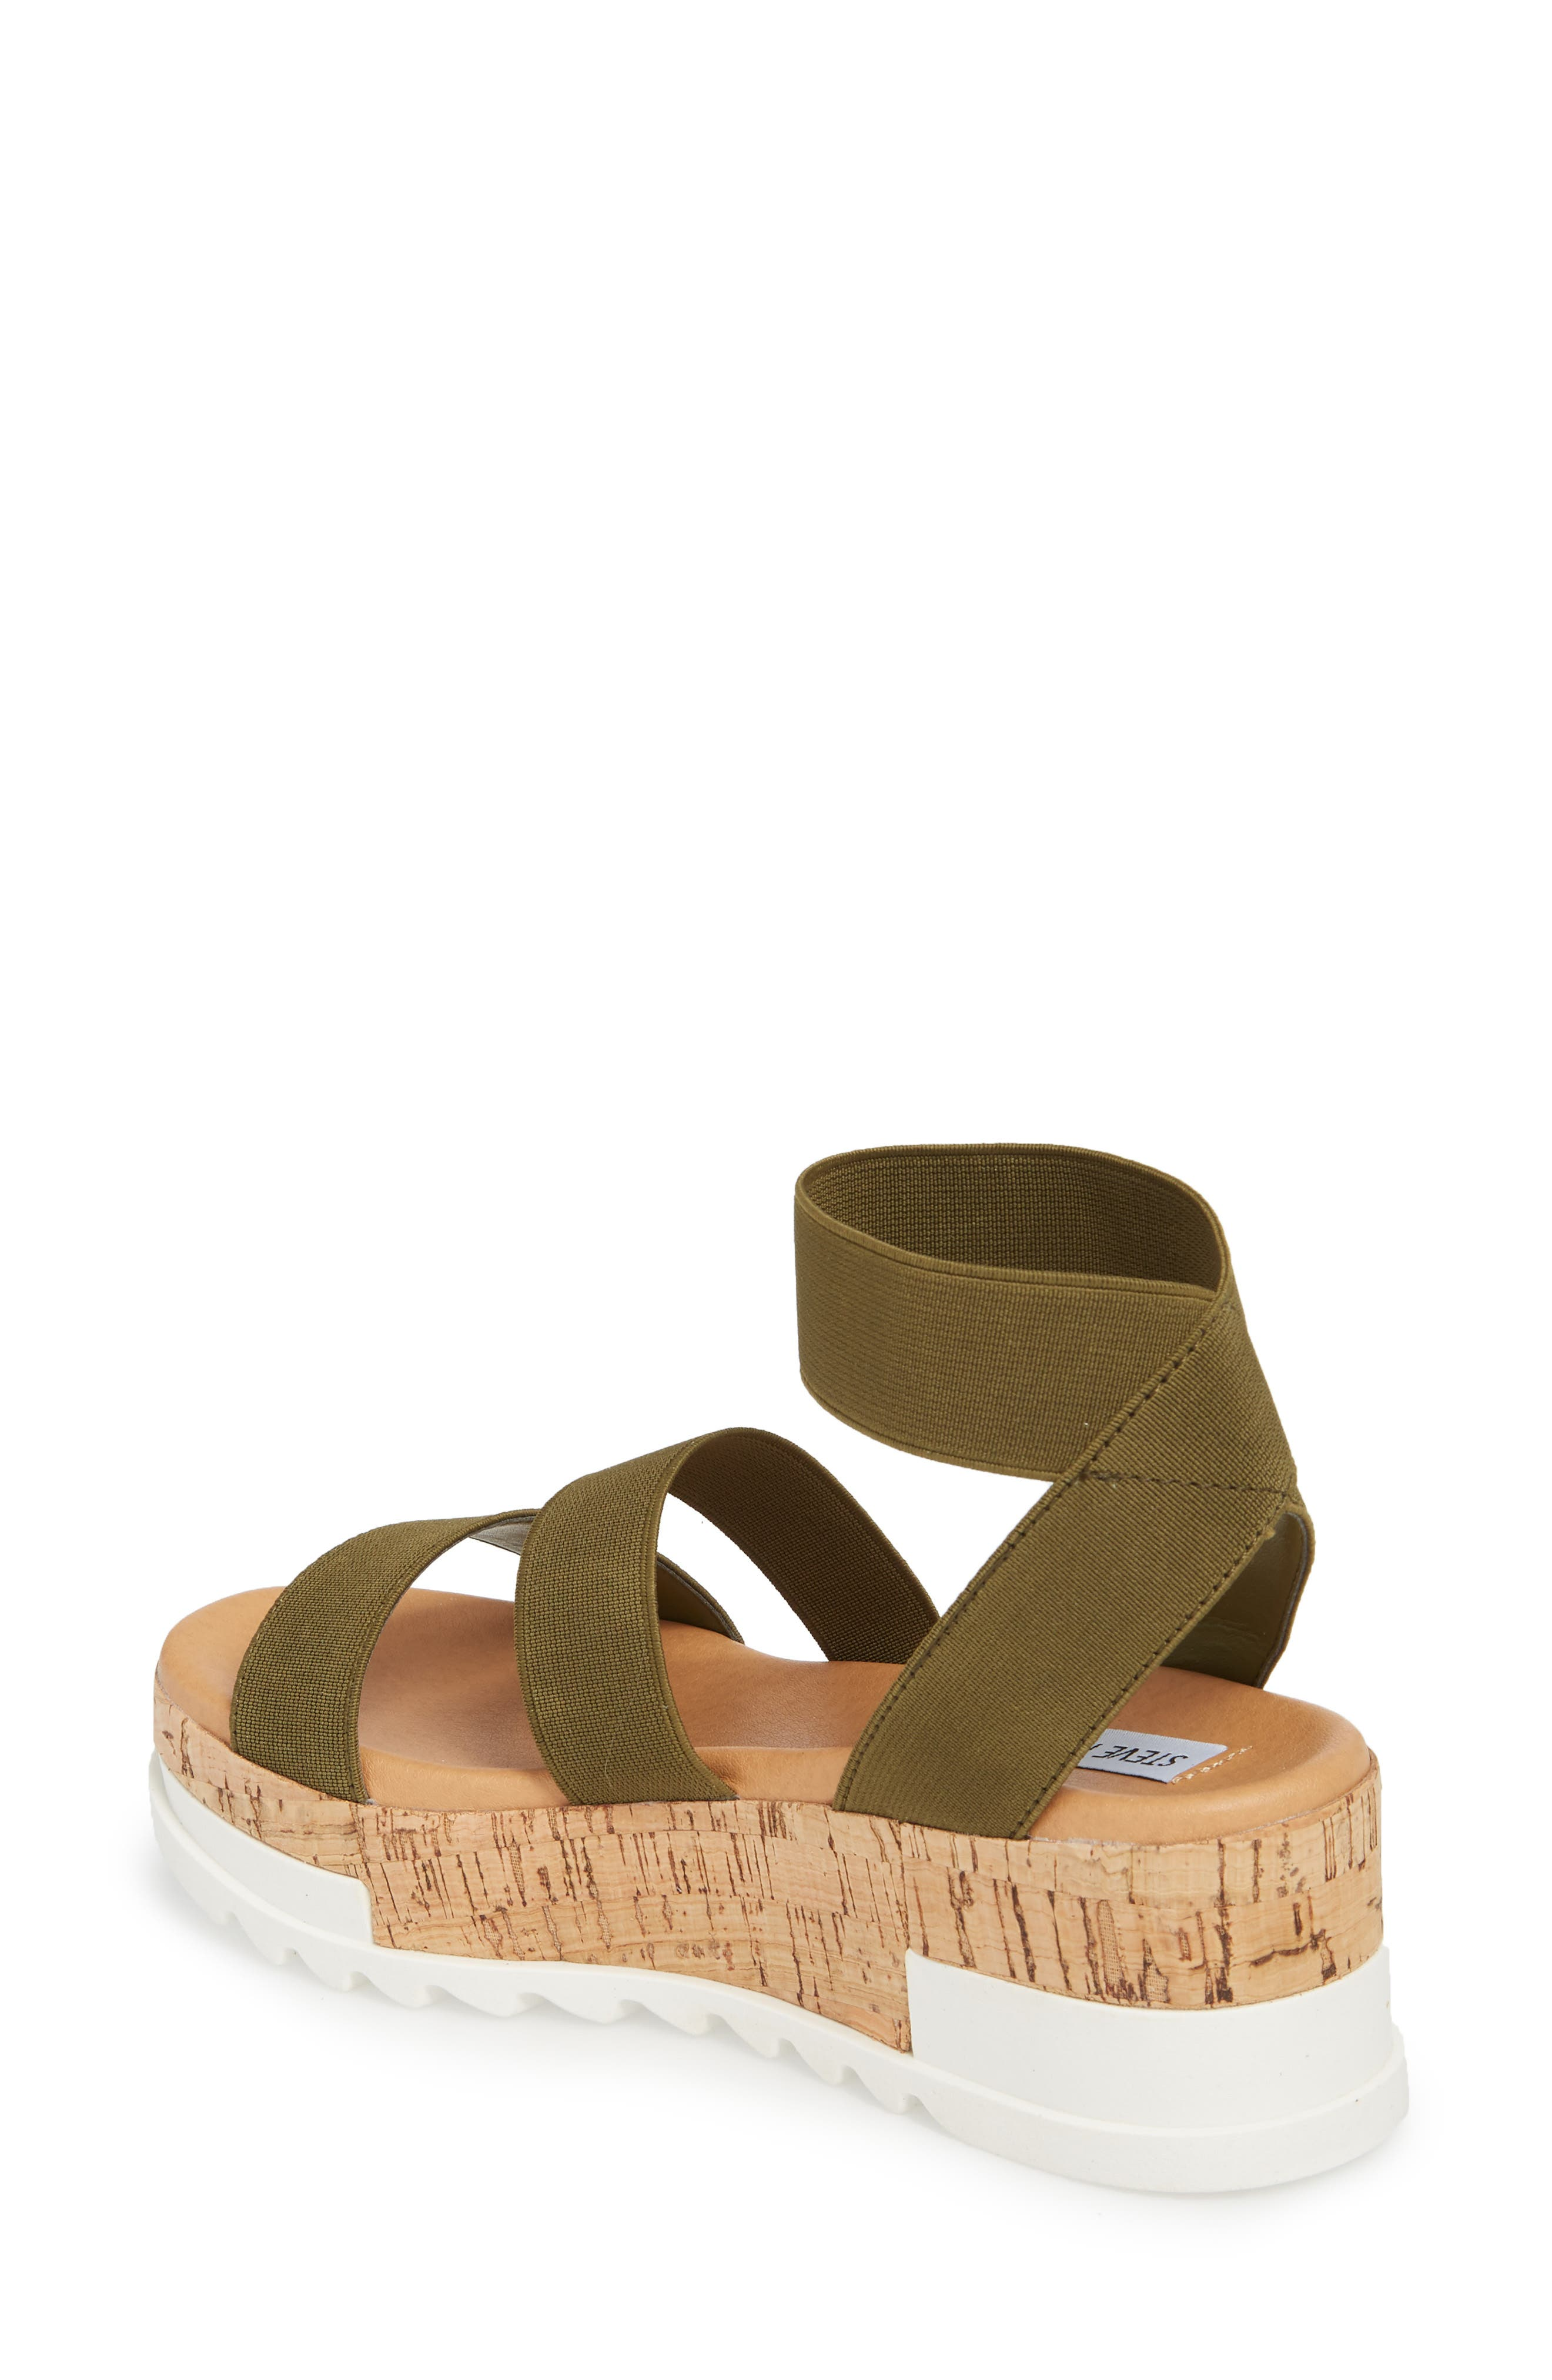 STEVE MADDEN, Bandi Platform Wedge Sandal, Alternate thumbnail 2, color, OLIVE